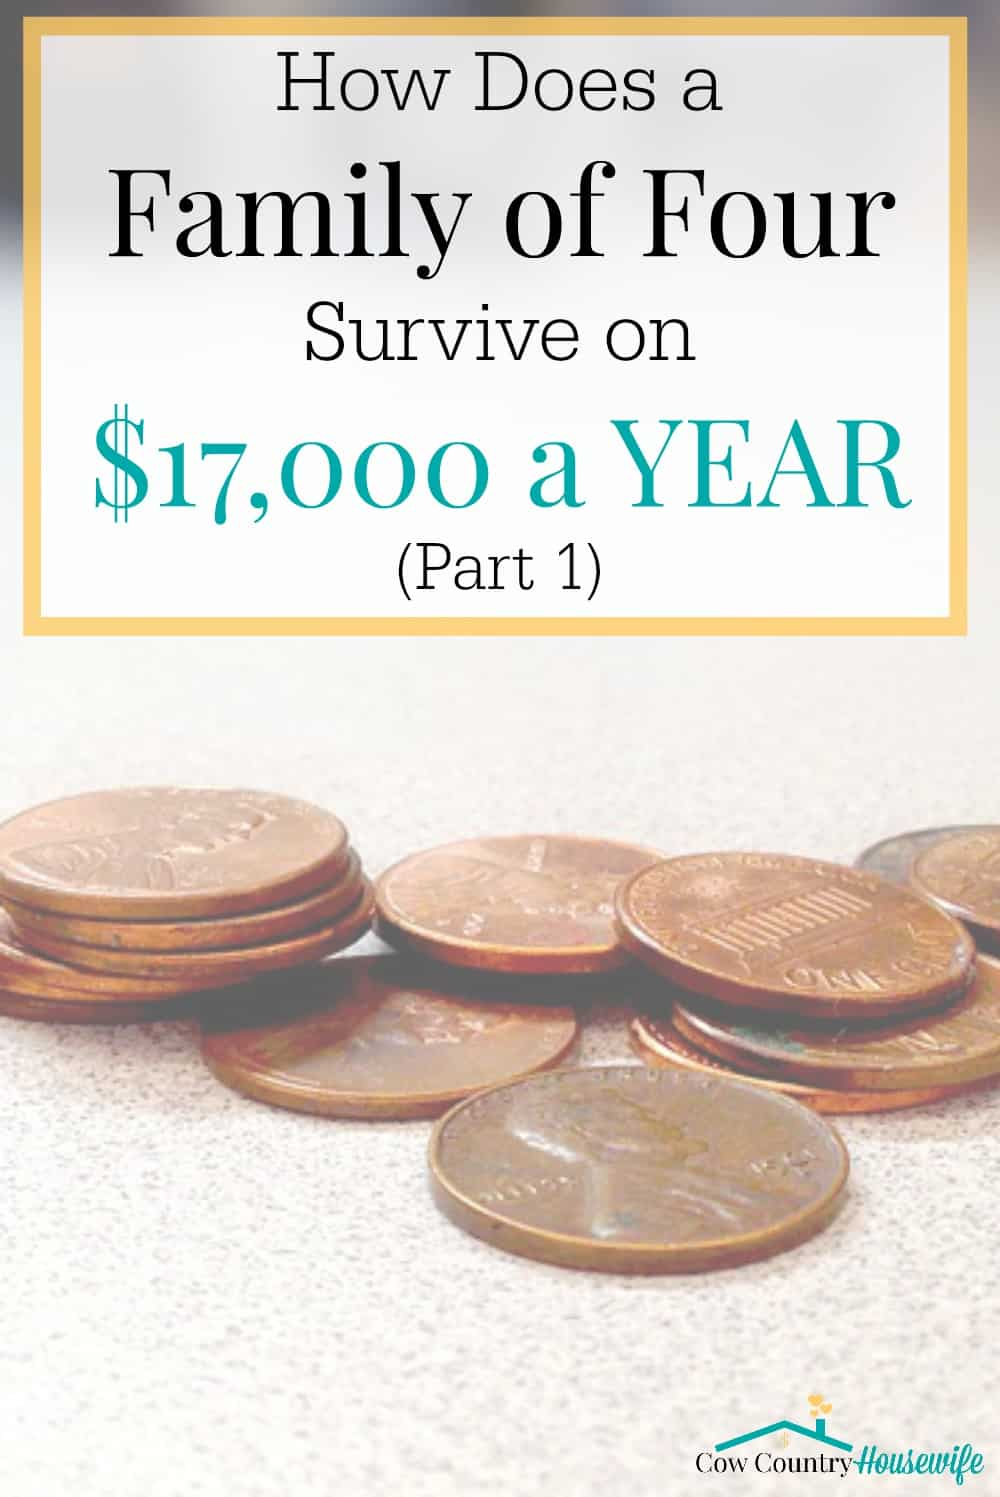 How Does a Family of Four Survive on $17,000 a YEAR? It wasn't easy, but we did it. AND still managed to buy 2 cars, a house, and build up a savings account. Here's how we did it...